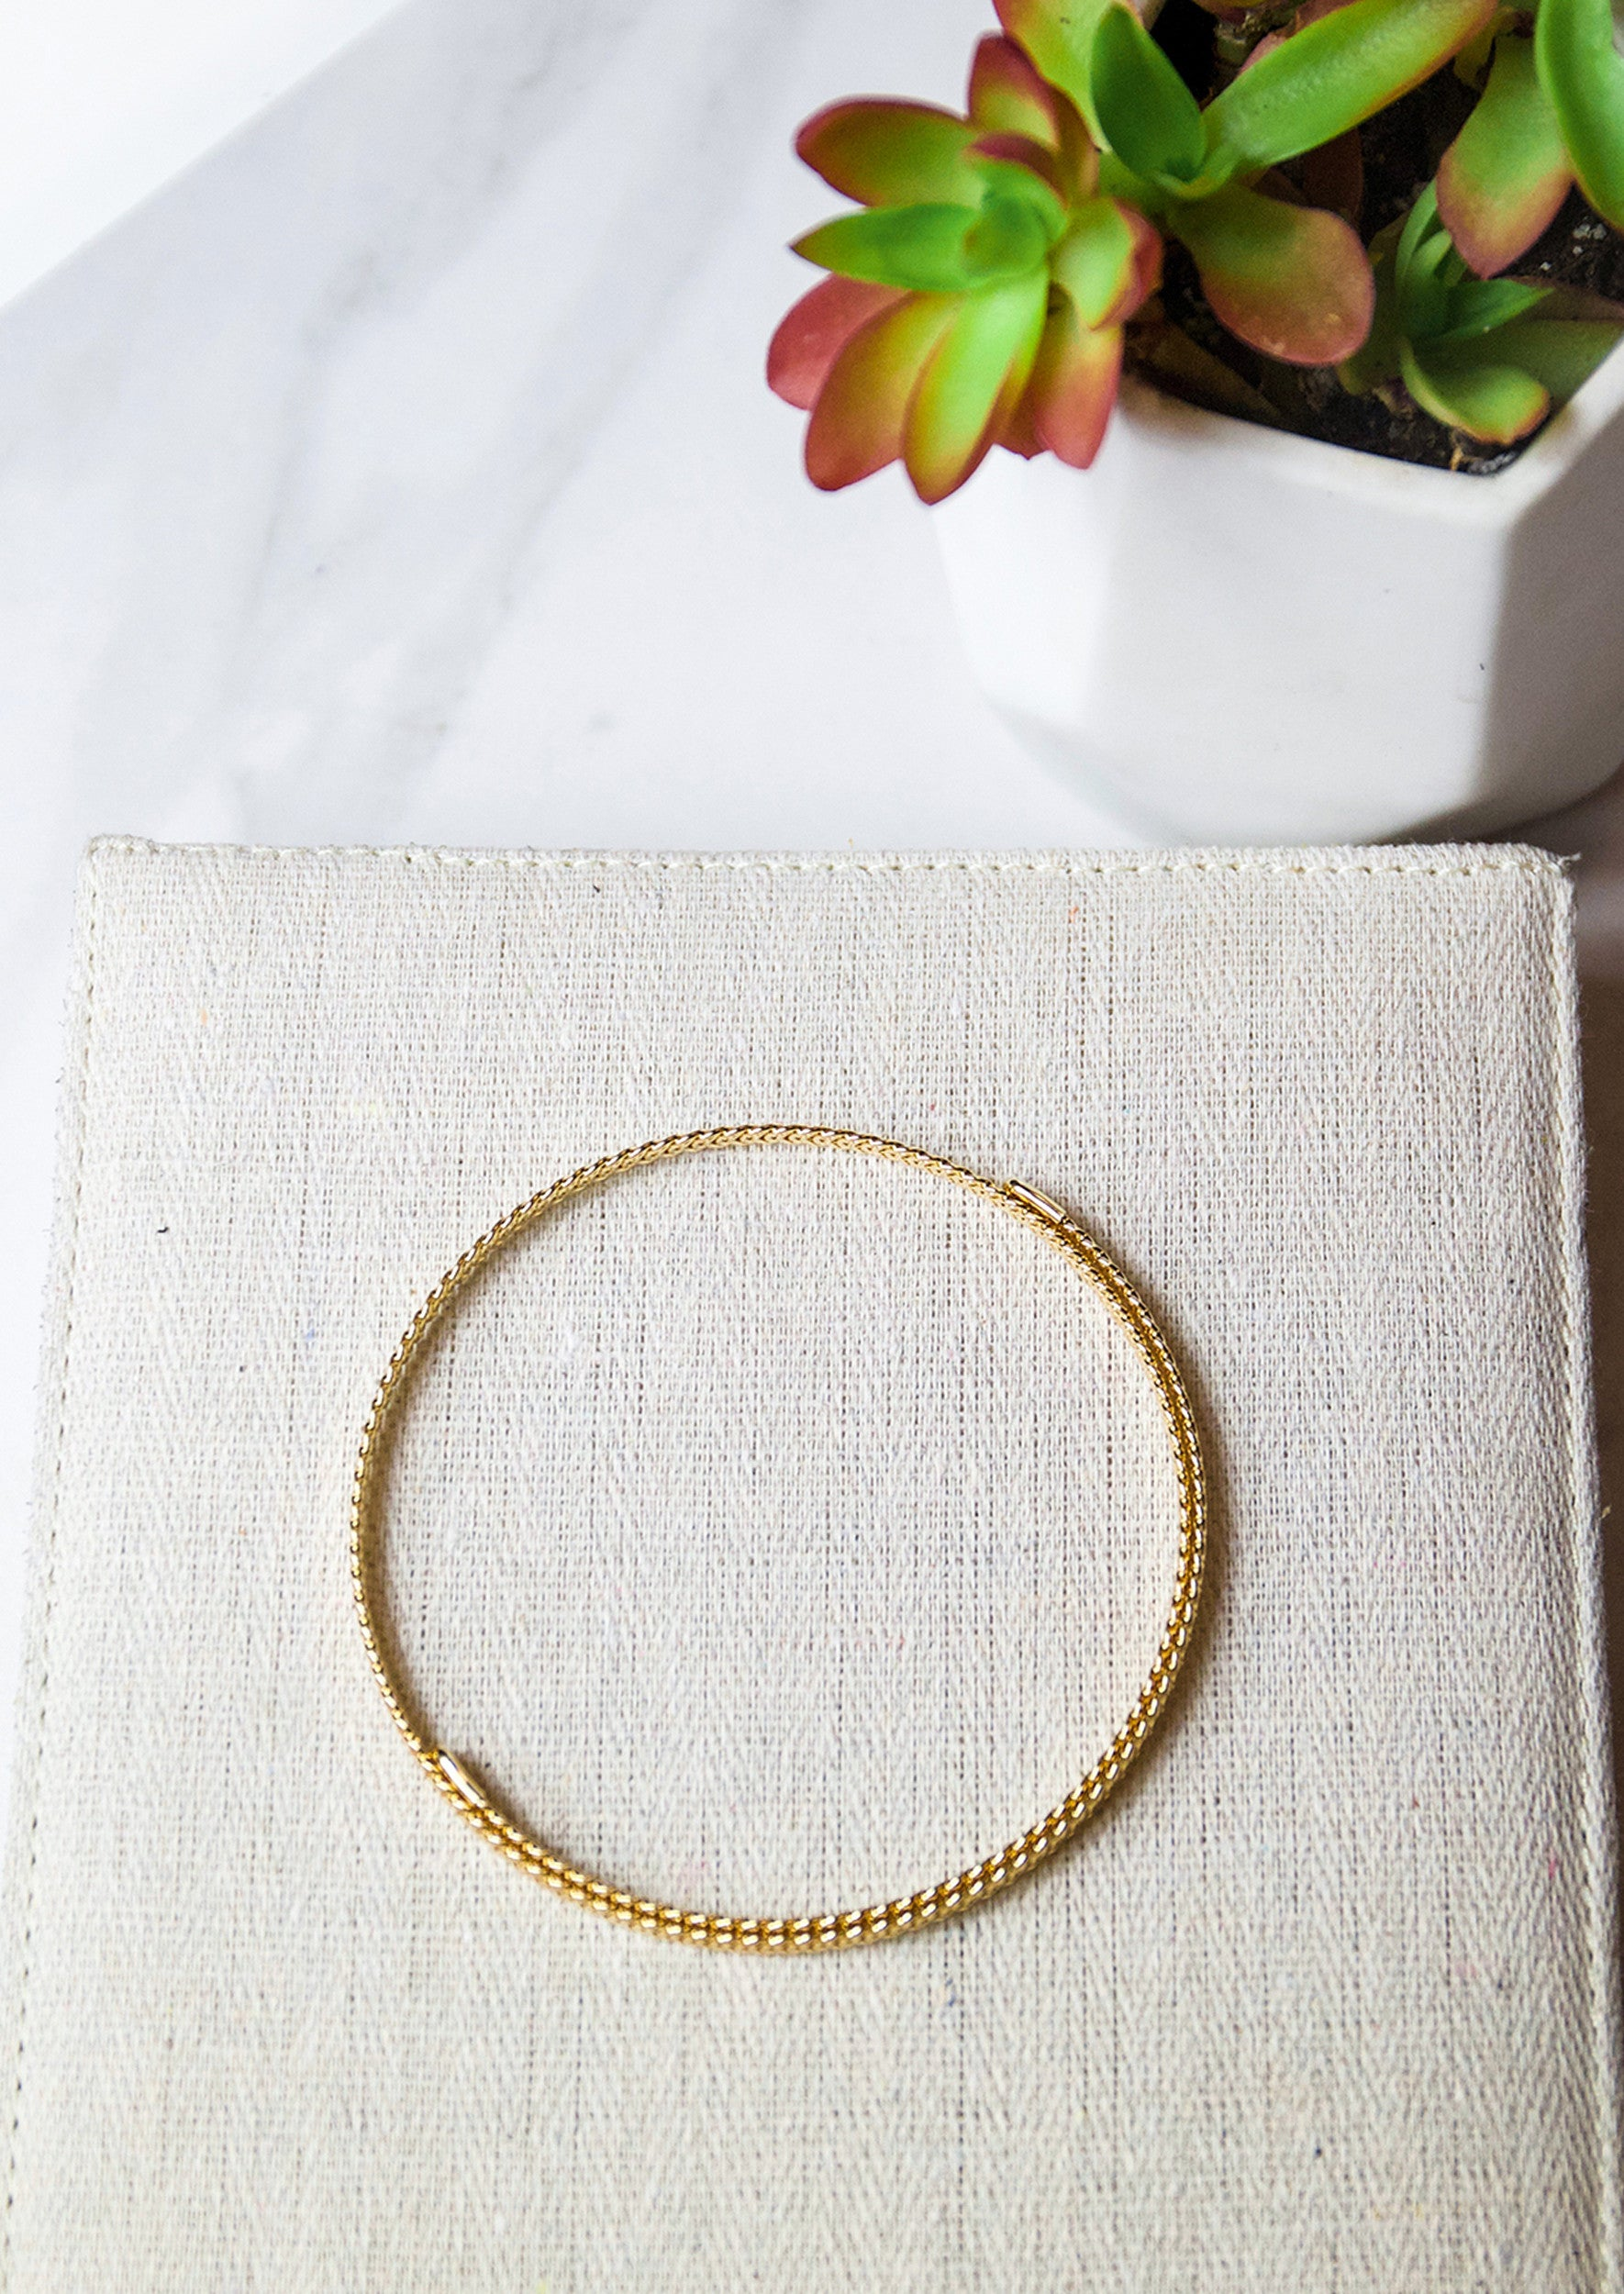 Nirvana Coil Choker - Jules Smith - 14K Gold Plated - Boho Jewelry